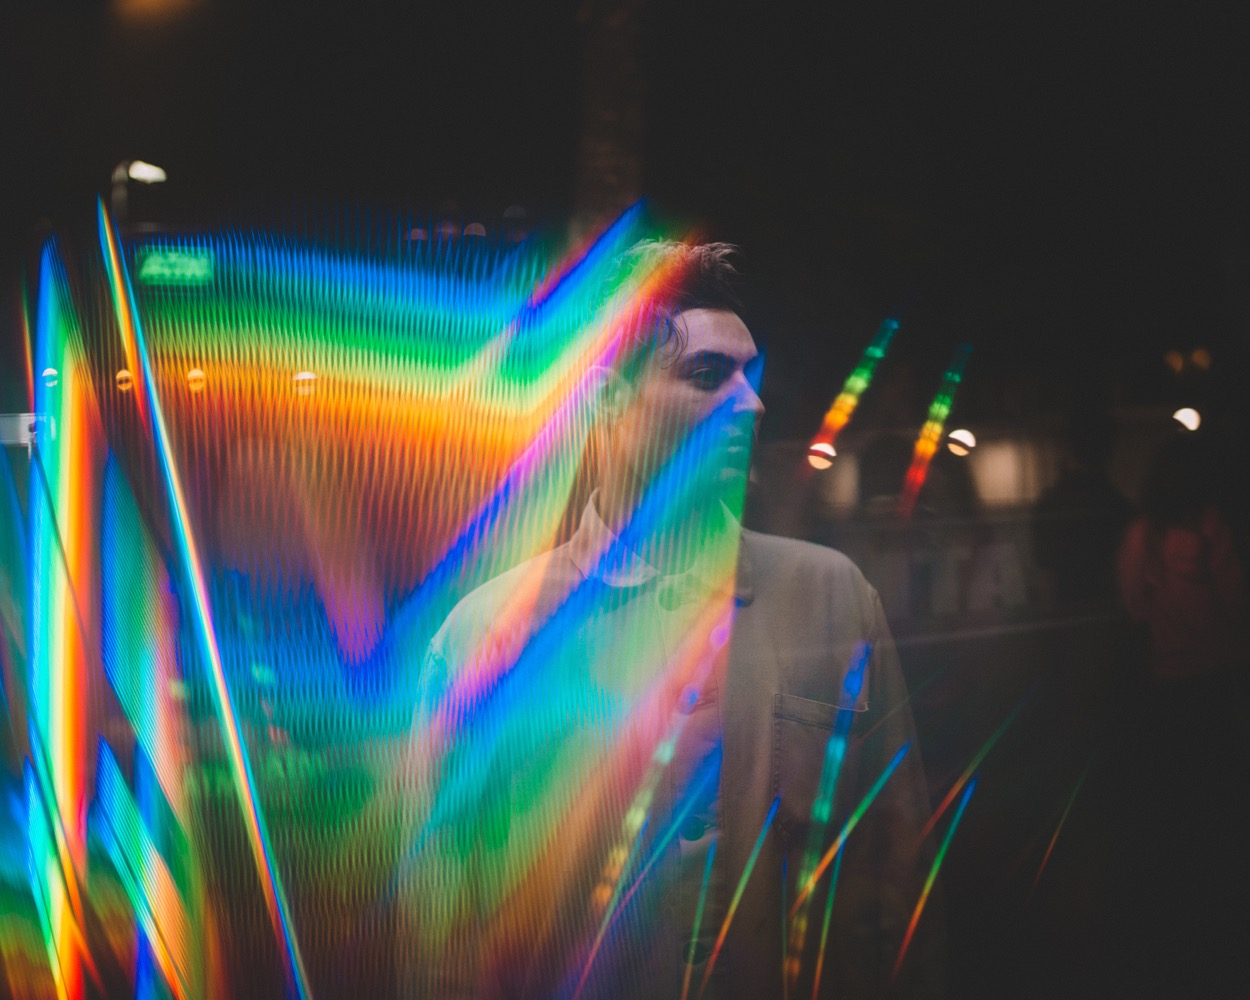 Yoke Lore. Photo by Jacob Wandel. Courtesy of the artist. Used with permission.